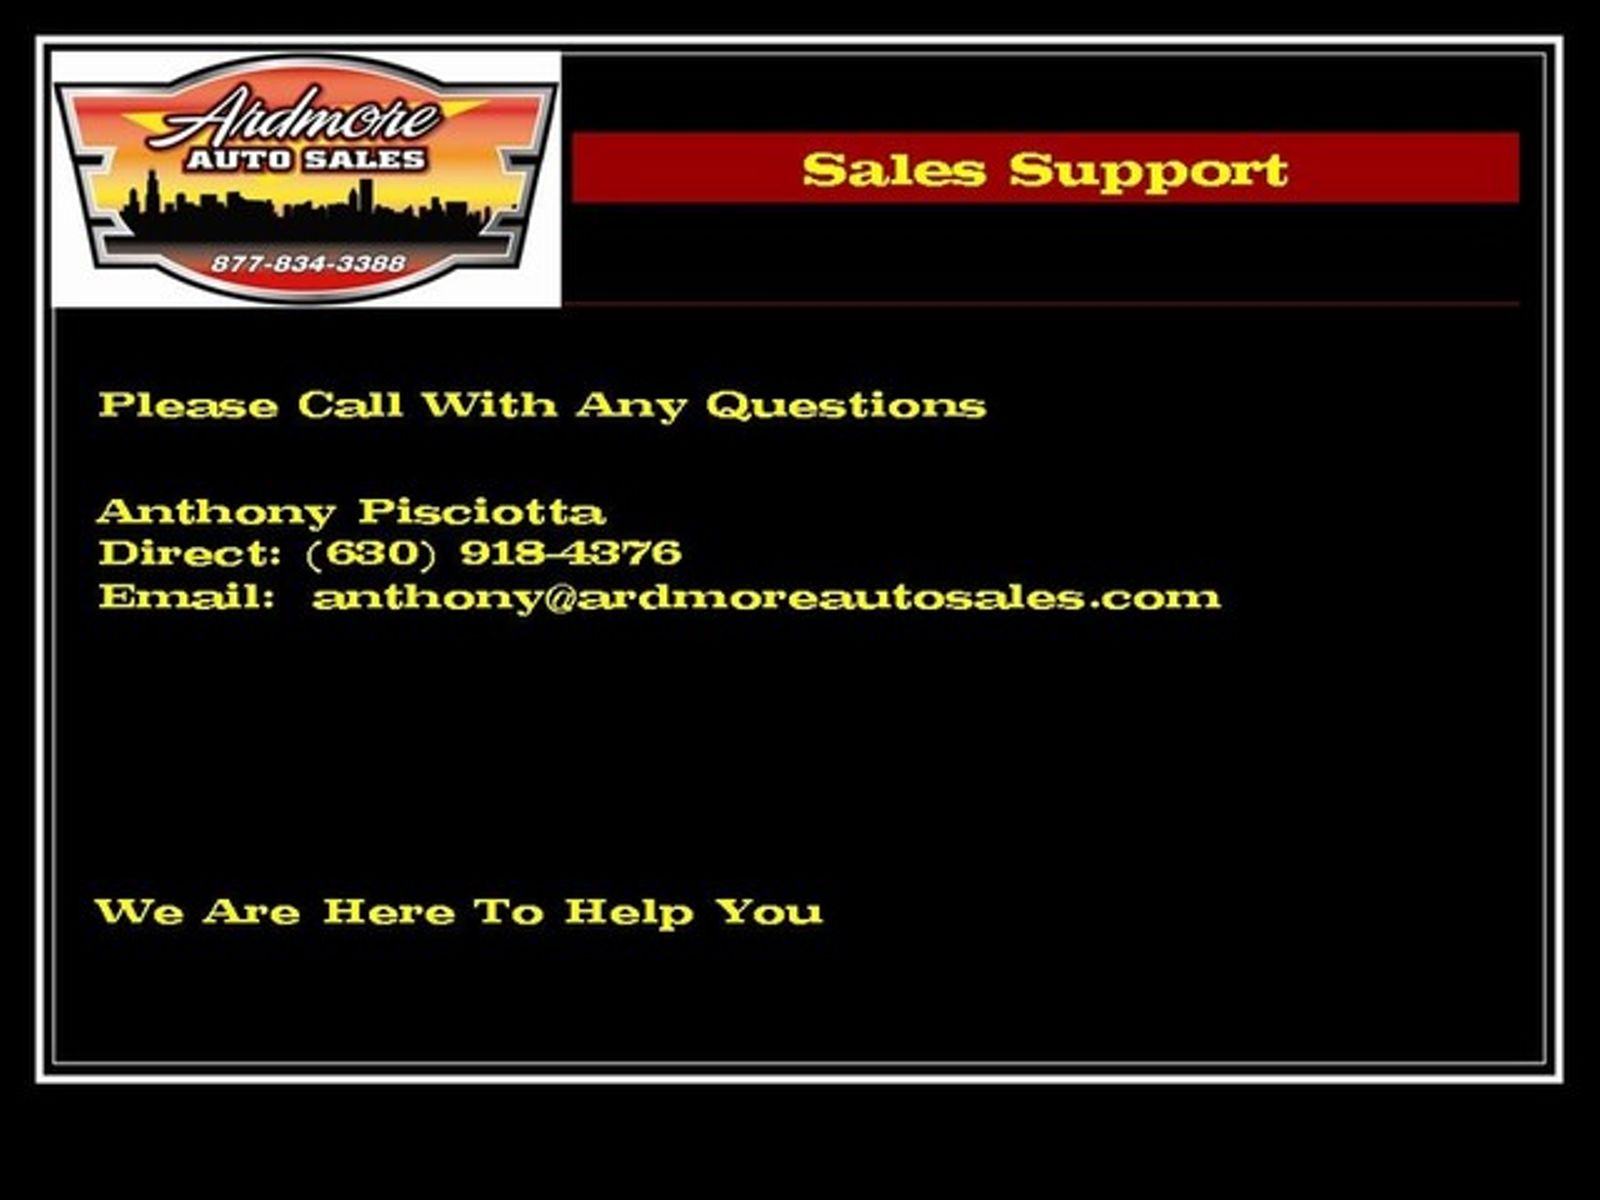 100 2003 Altima Service Manual How To Install